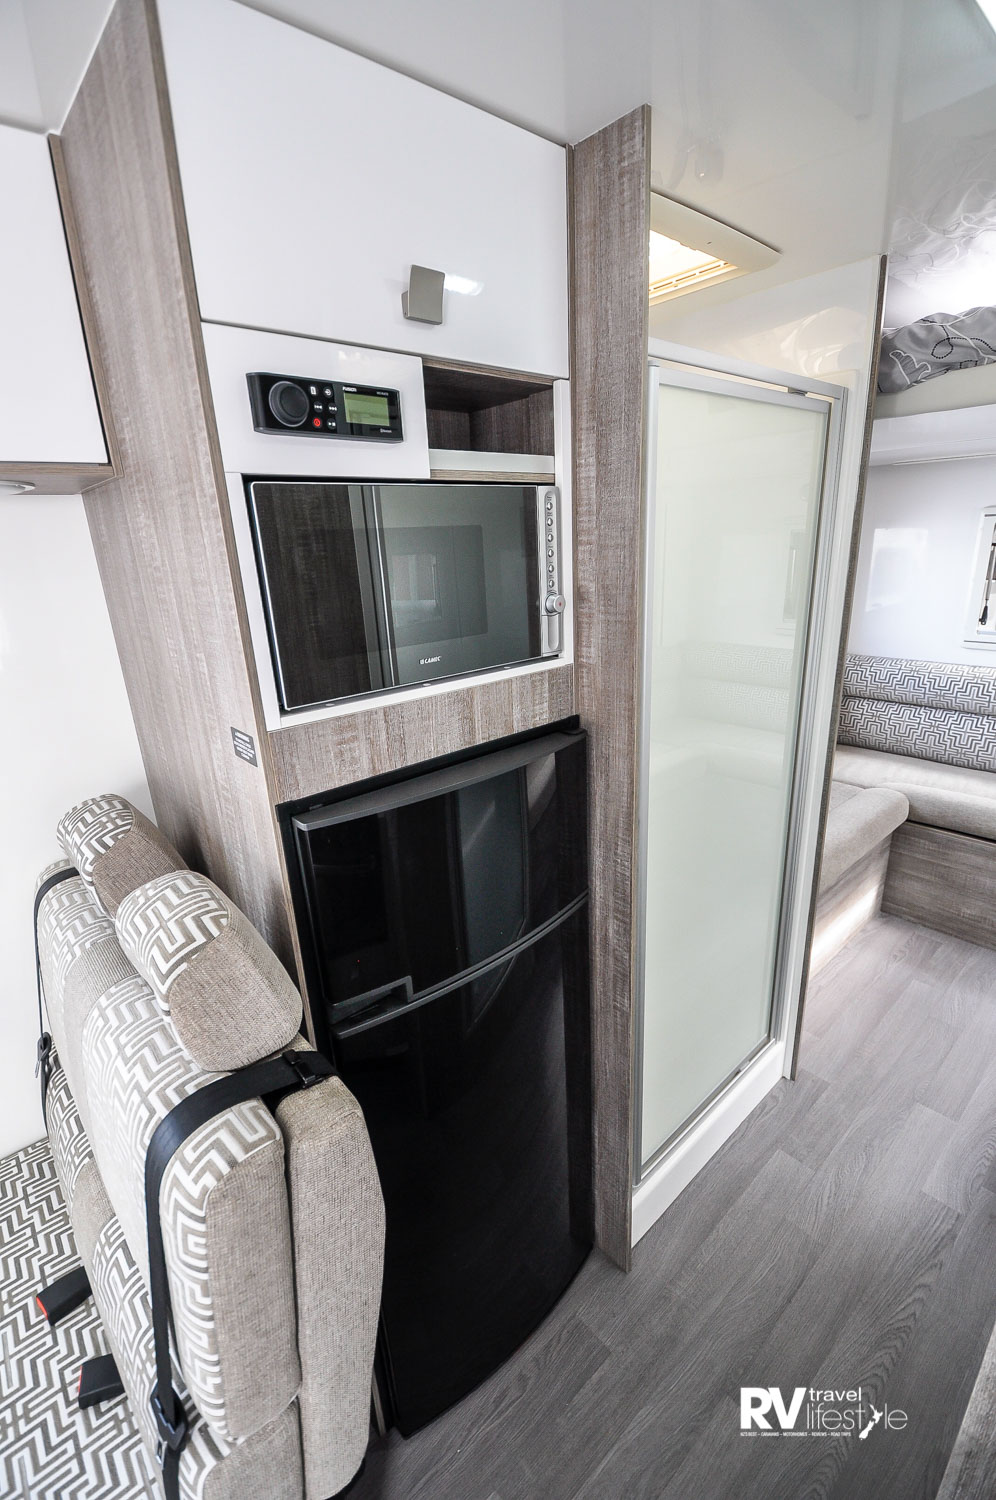 Behind the dinette we move to the utility tower with 190L auto three-way fridge, microwave and entertainment centre above, storage above that – walk through to the shower en-suite and the rear lounge